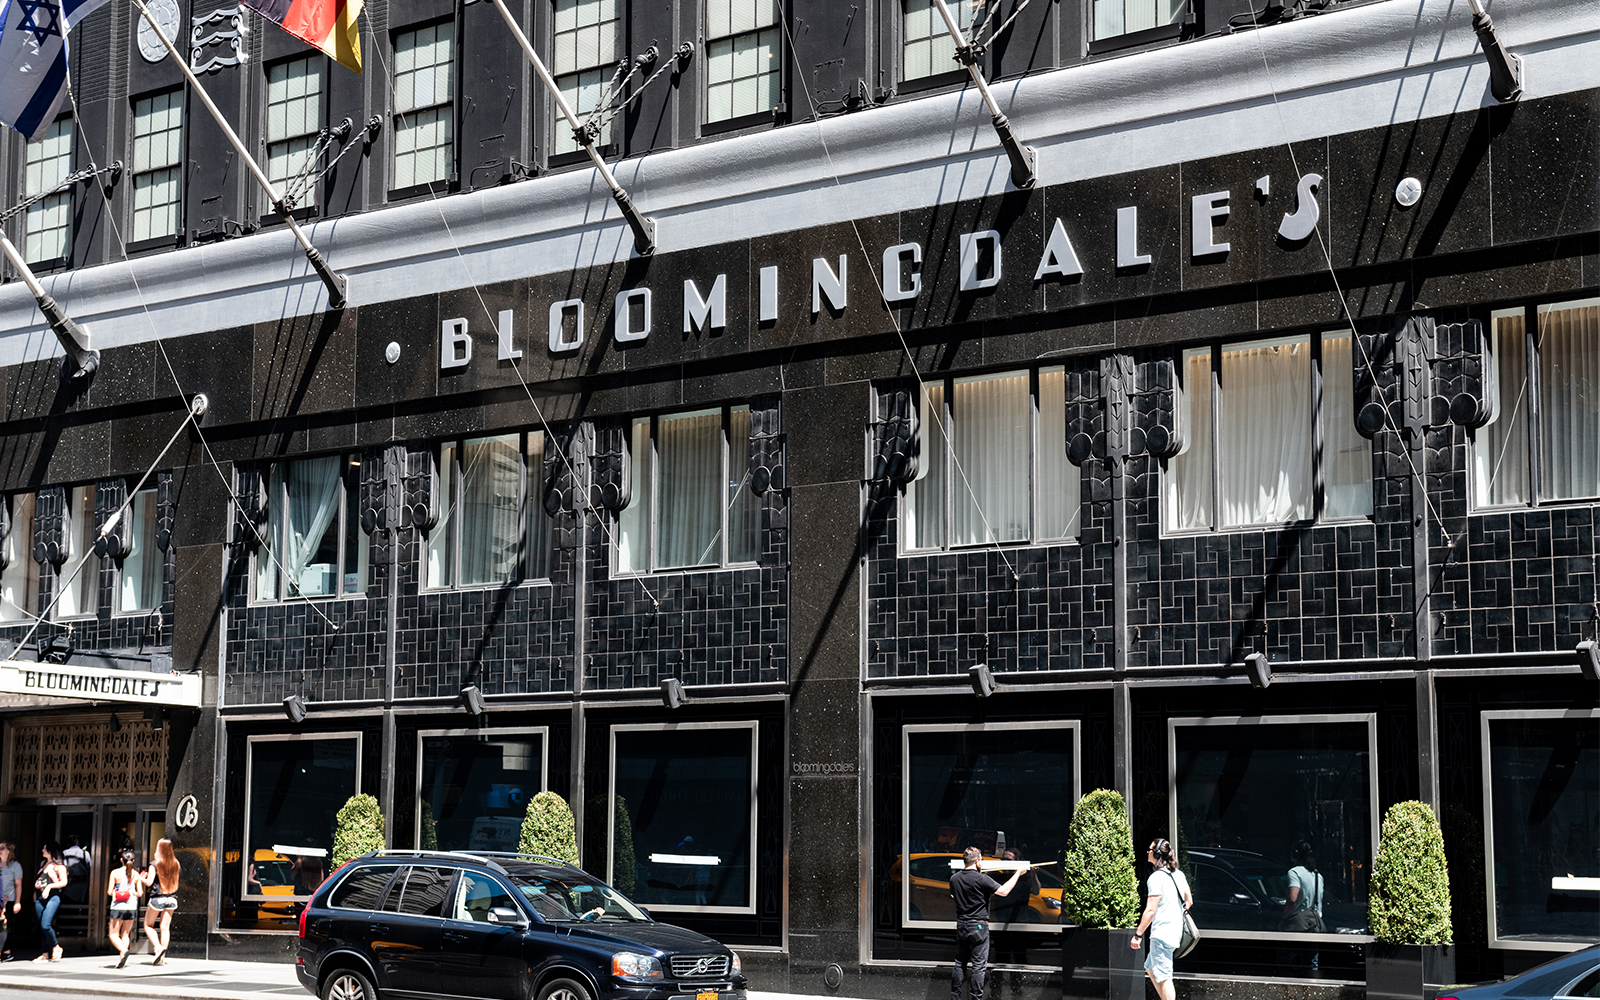 The Best Bloomingdale's Black Friday Deals for Travelers